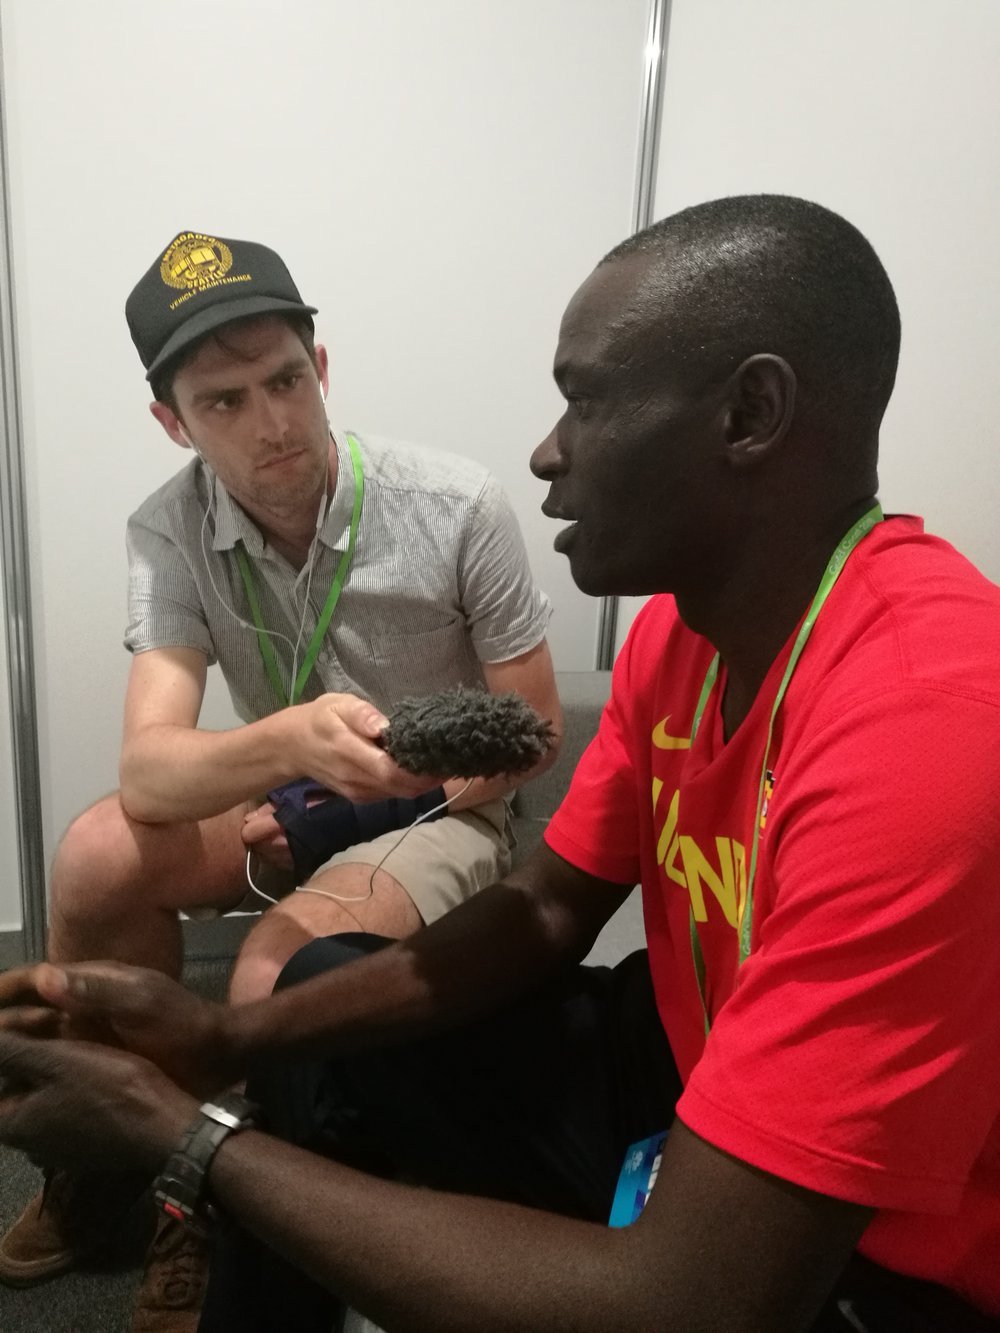 Julius Achon speaking to Planet Sport's Tom Ellis at the 2018 CW Games.